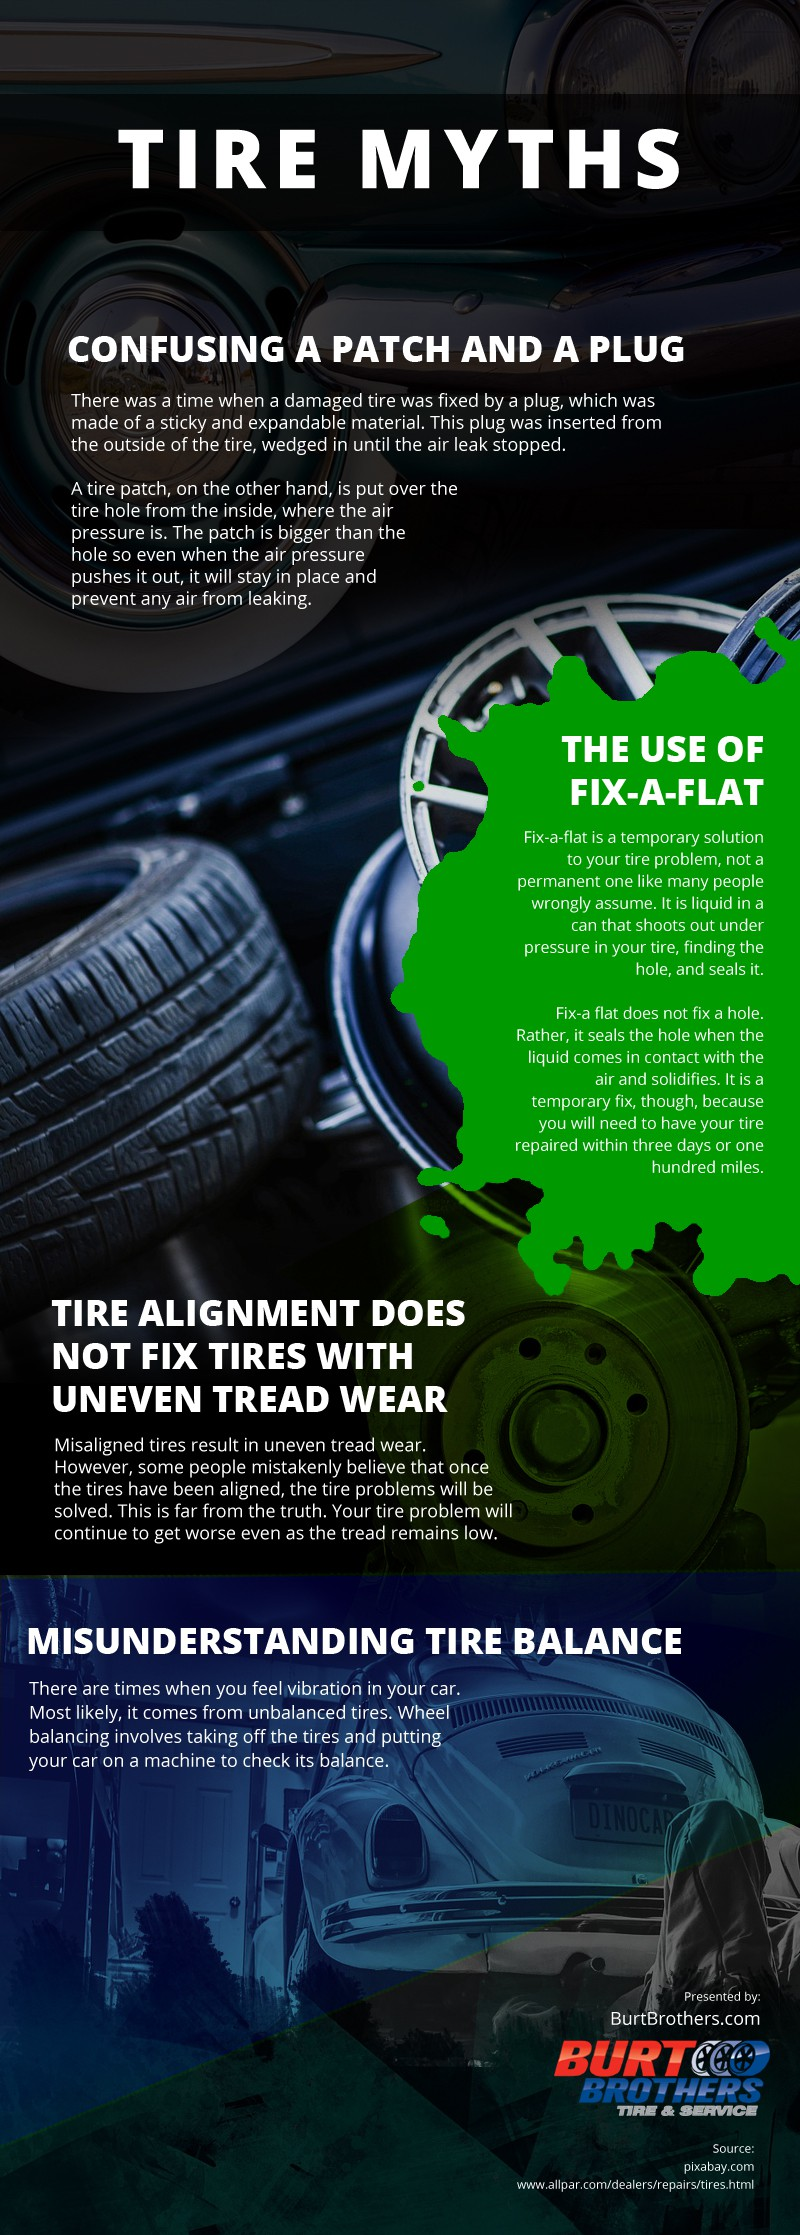 Tire Myths infographic